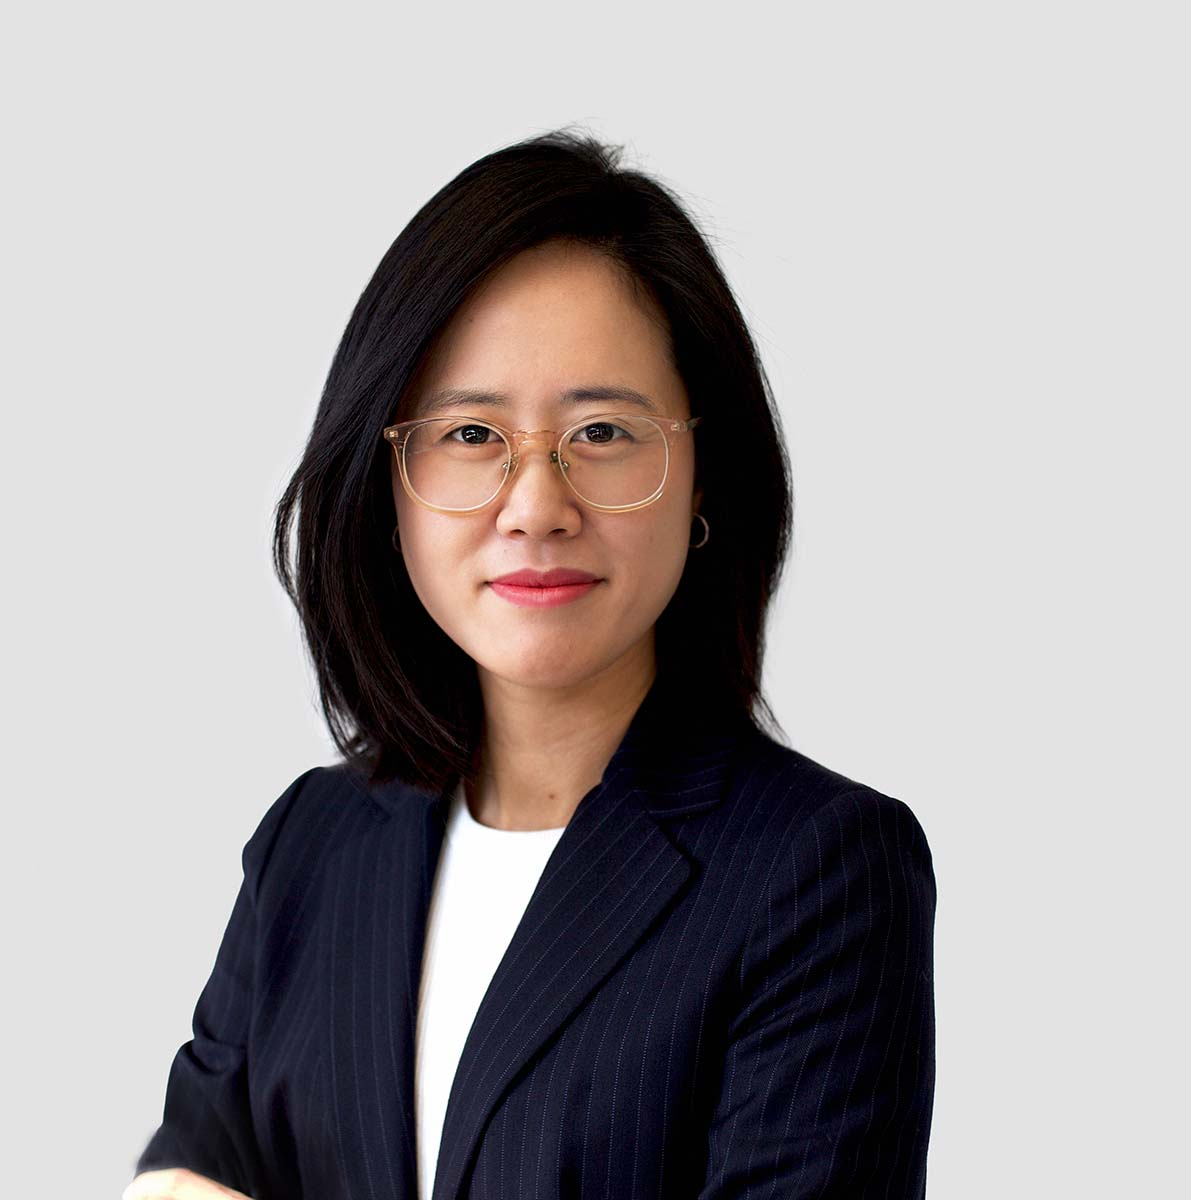 Youmee Lee, Assurance Specialist, IMA Services